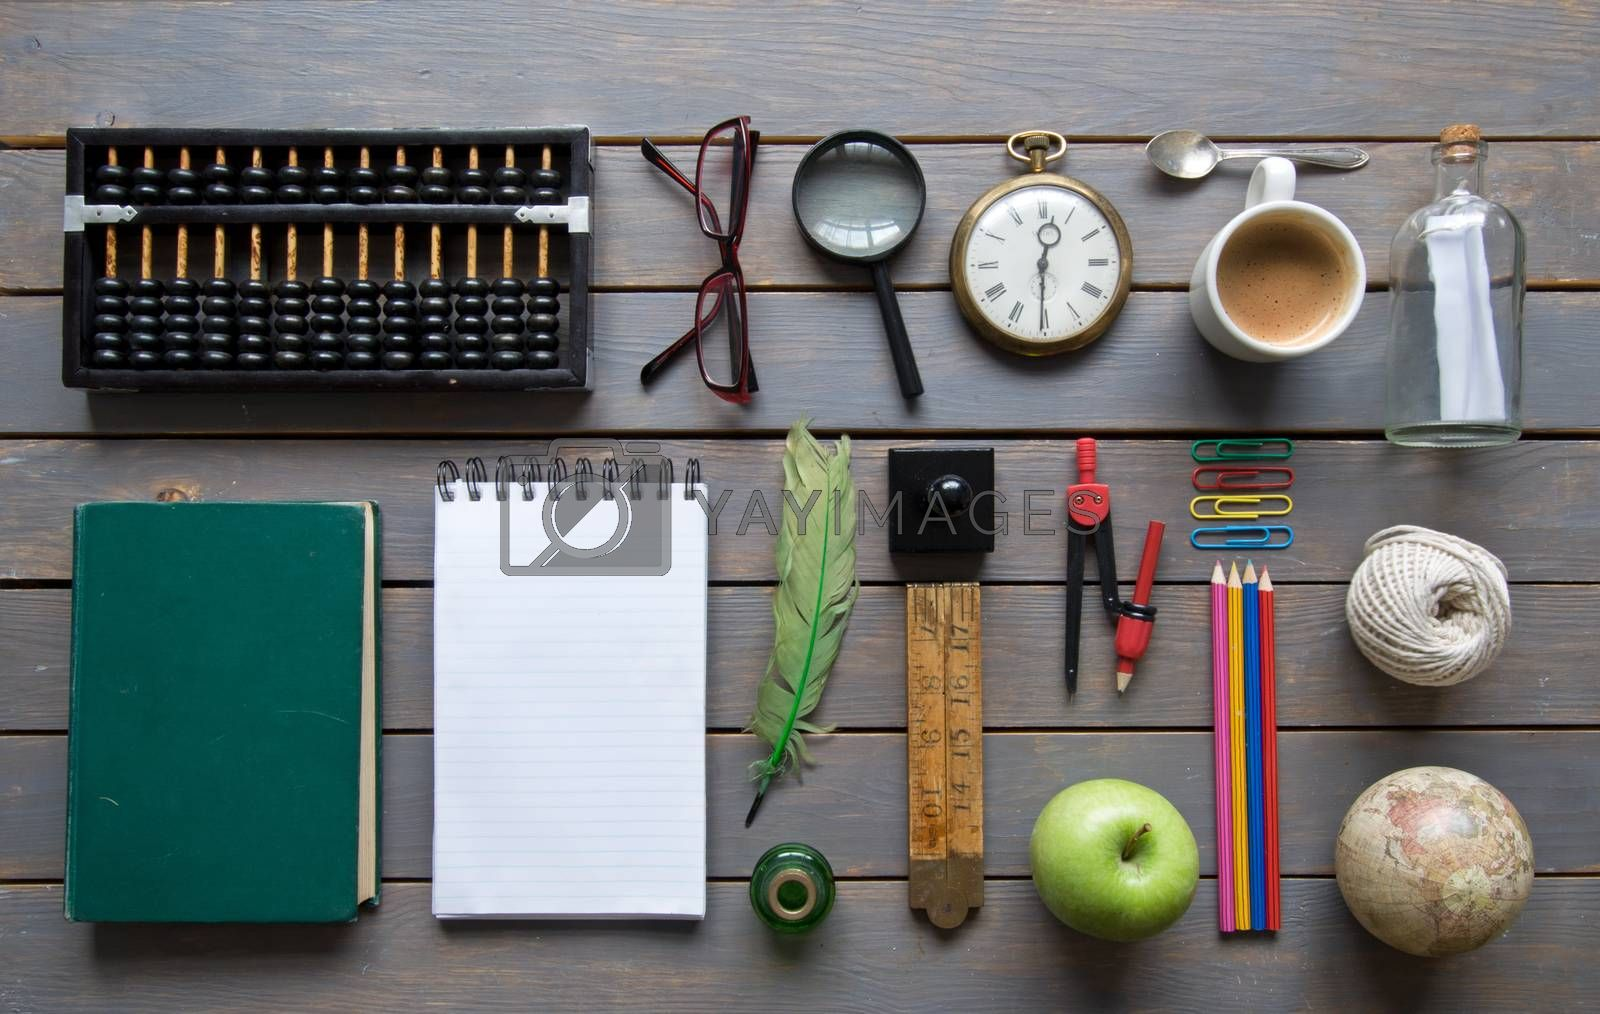 Various items, including stationery and vintage,  laid out on a wooden background